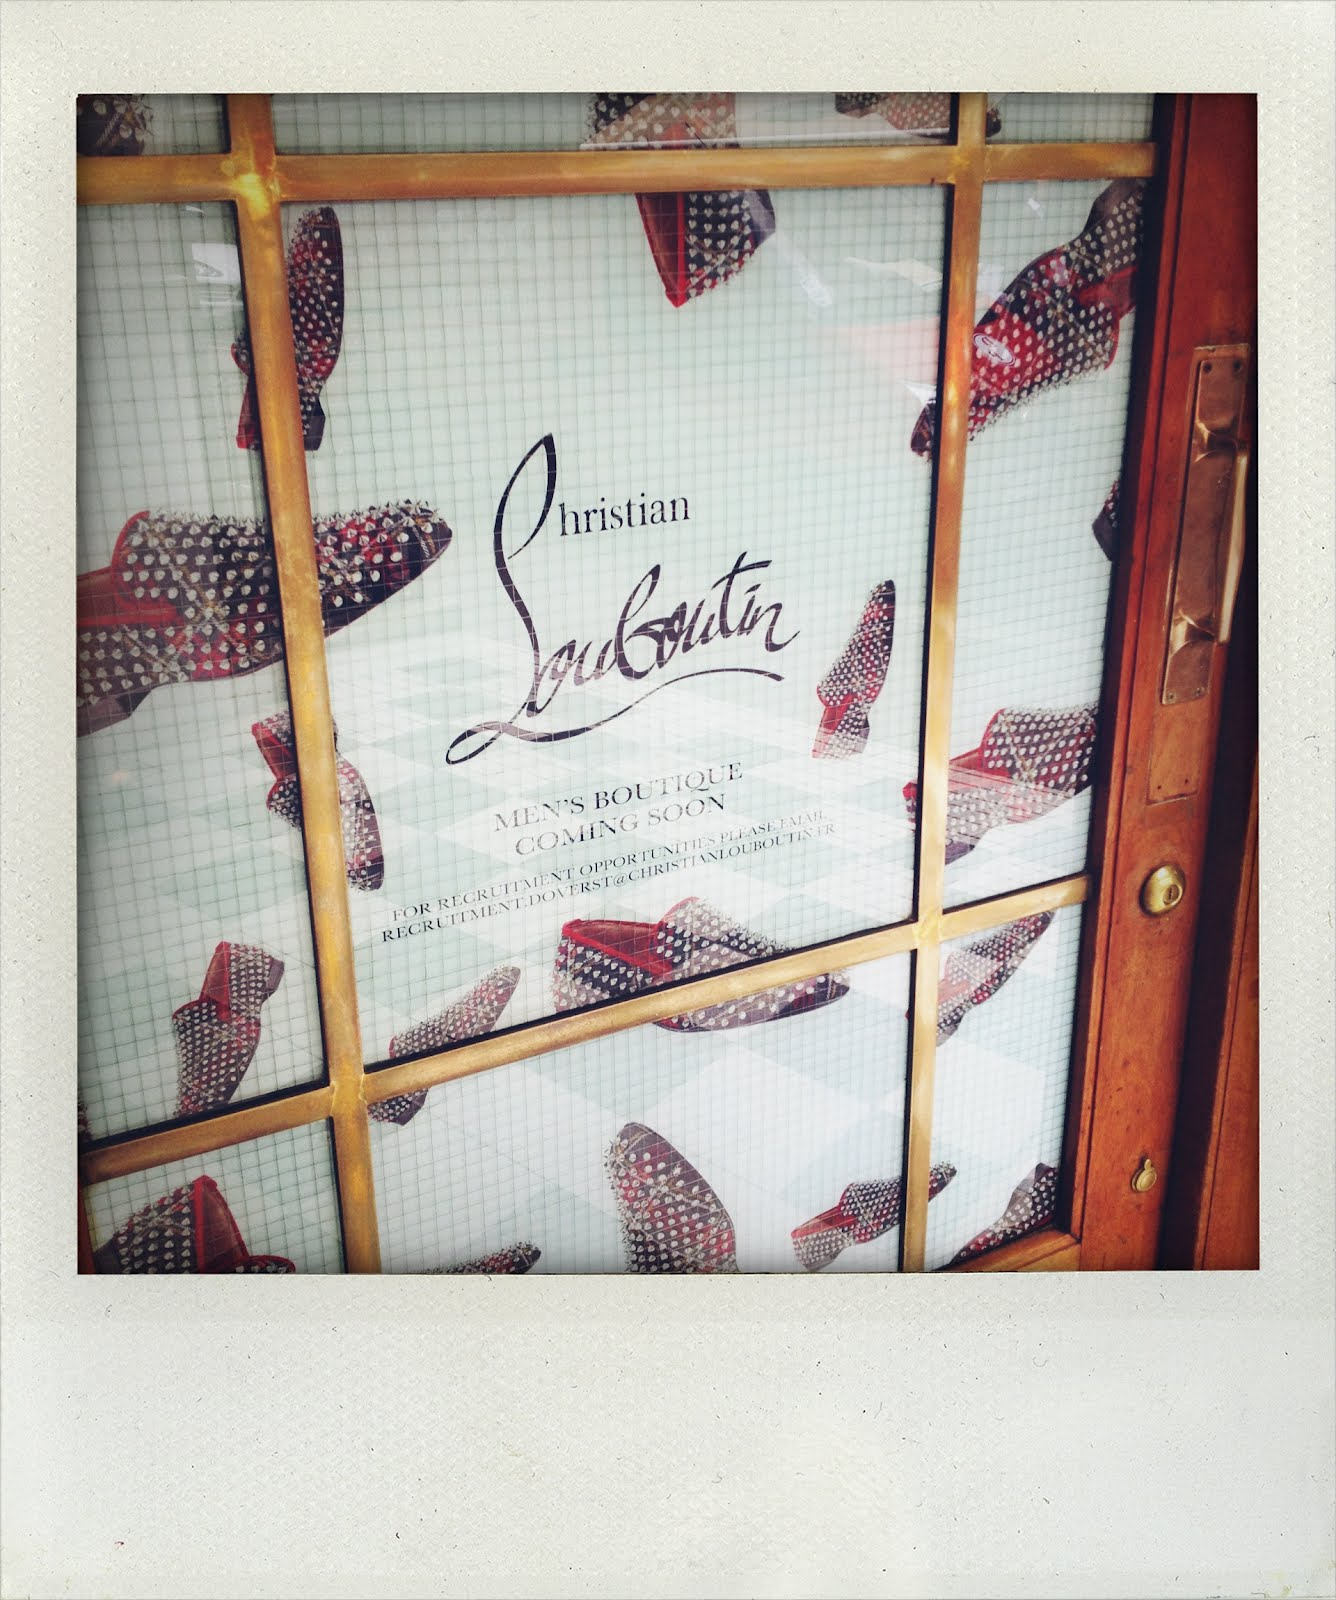 00O00 London Menswear Blog Christian Louboutin Men's Boutique, 35 Dover Street, London W1S 4NQ